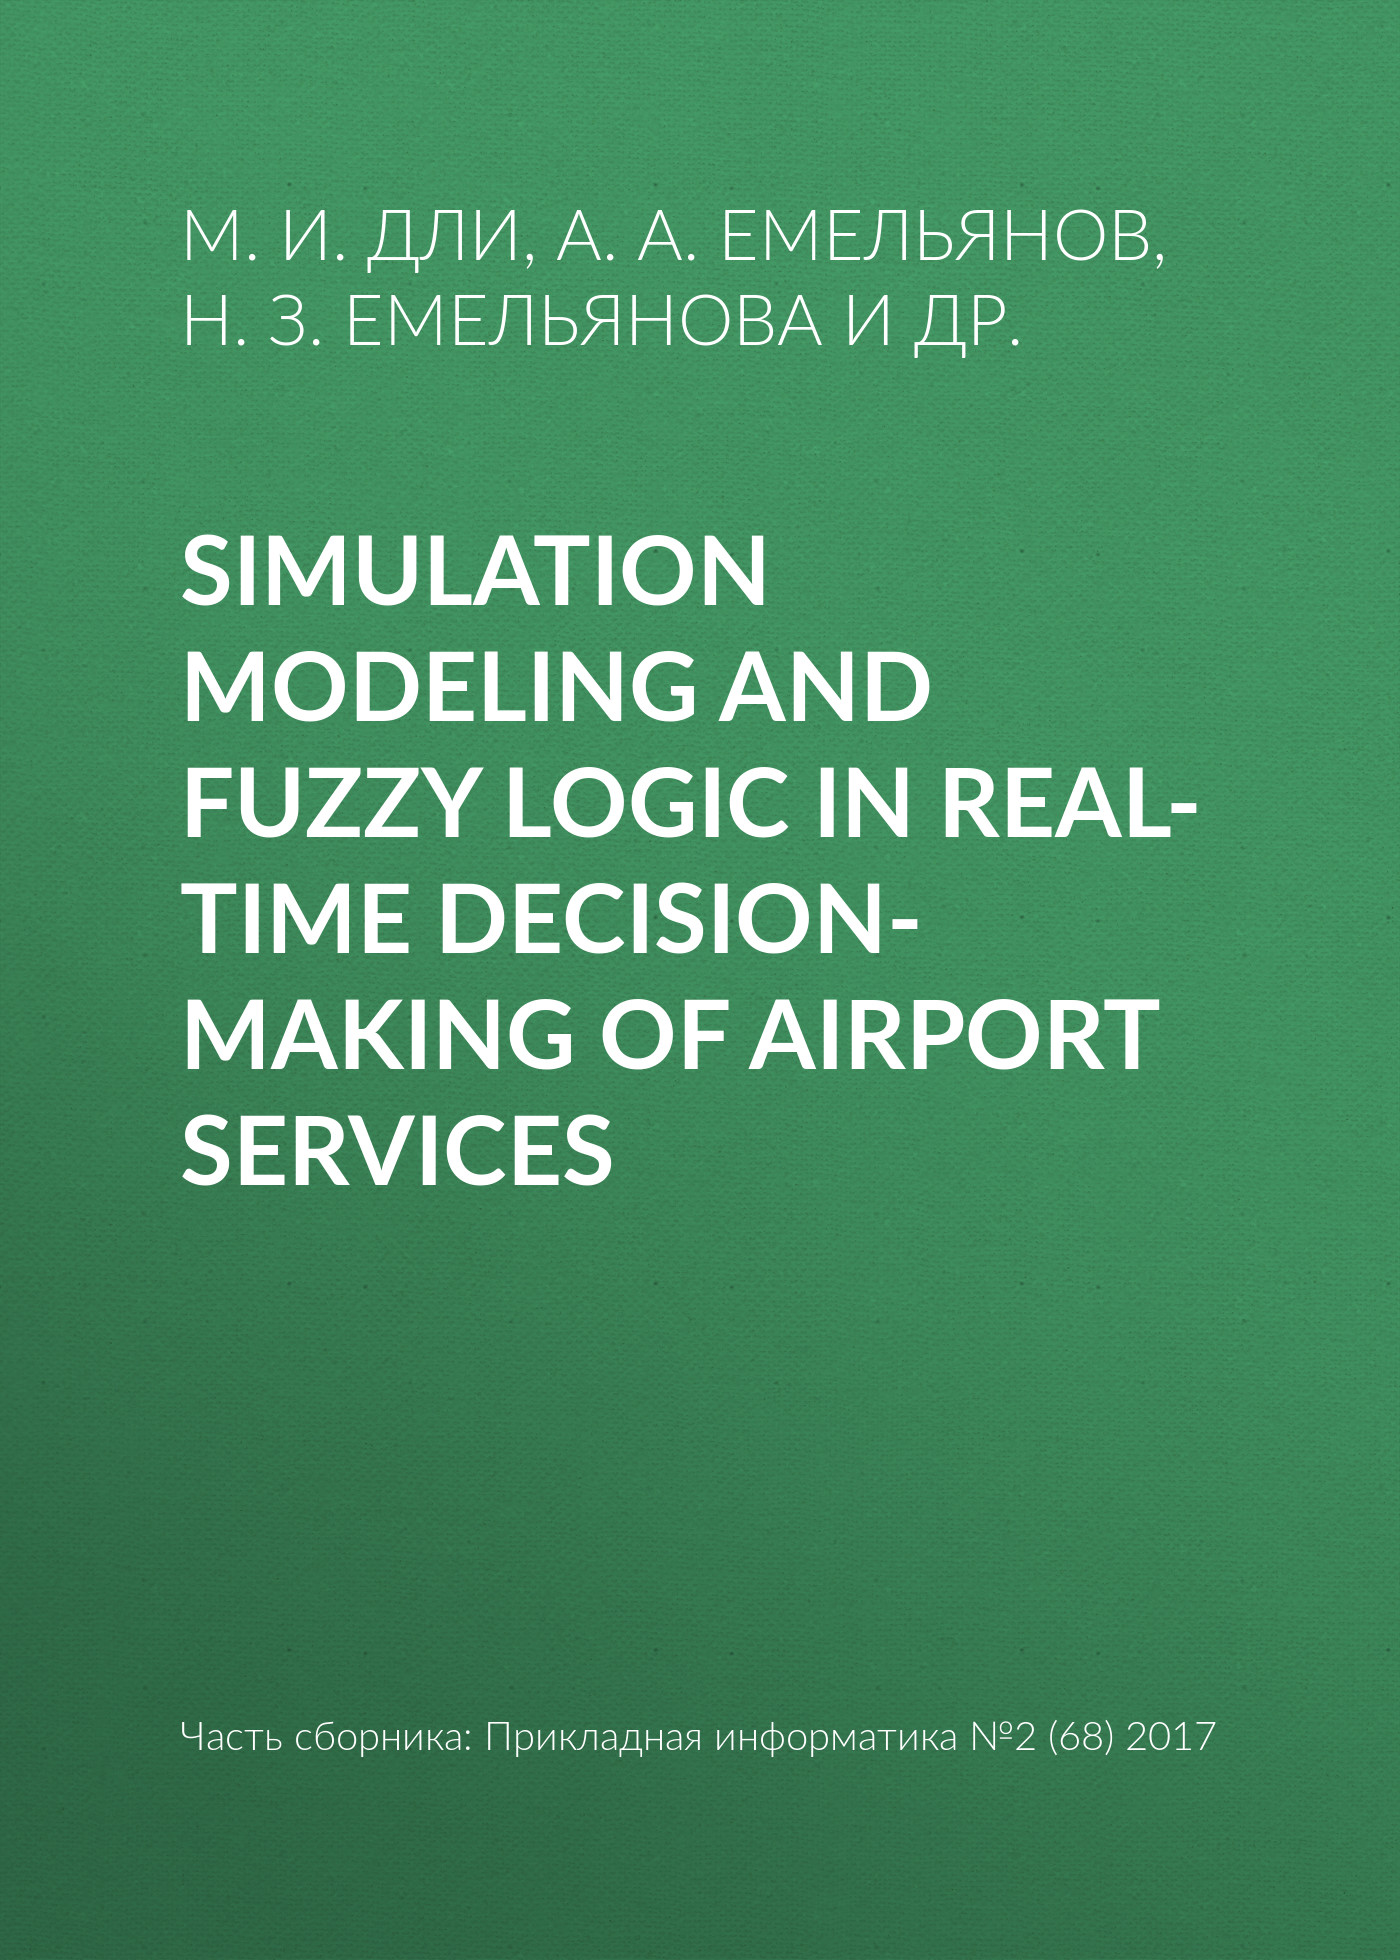 Н. З. Емельянова Simulation modeling and fuzzy logic in real-time decision-making of airport services deterministic stochastic and fuzzy logic modelling of di wfi systems